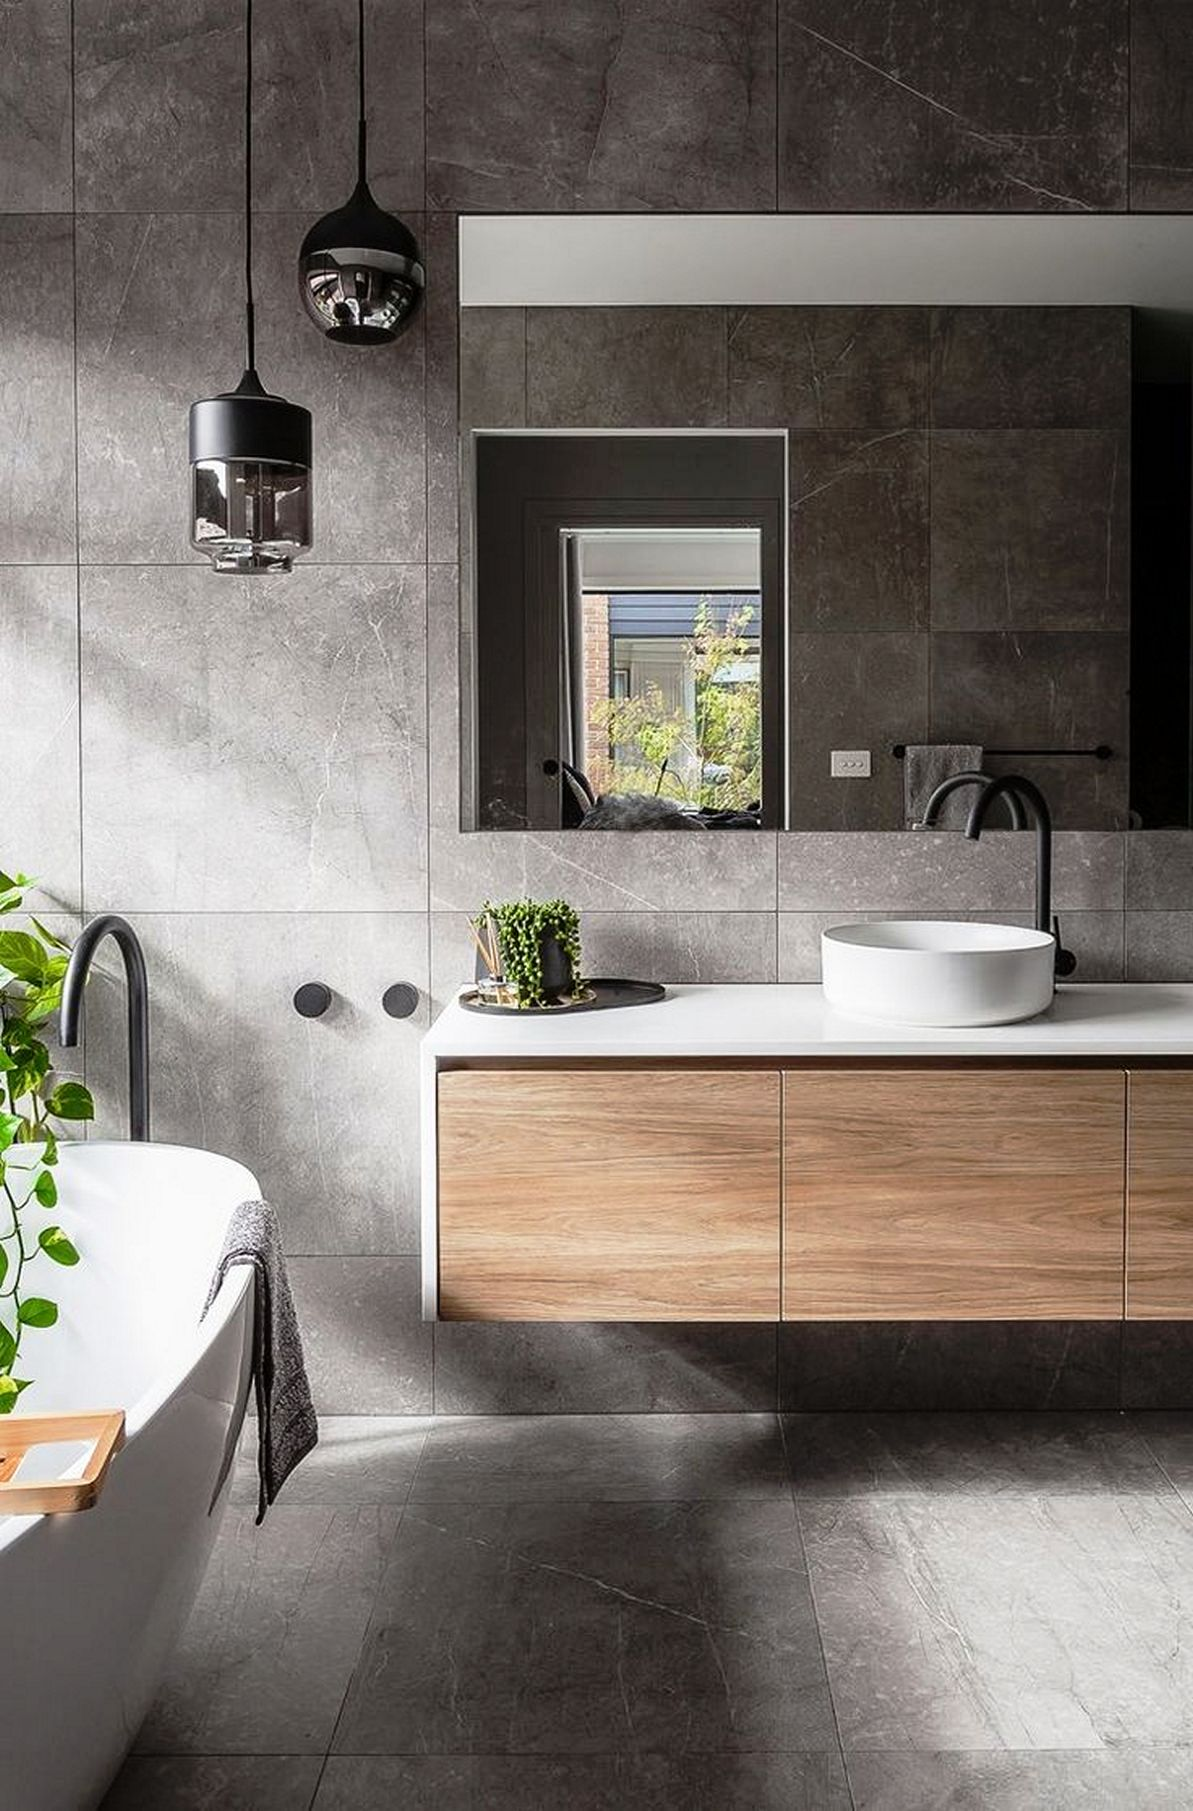 Bathroom trends 2021 the perfect new look for your bathroom remodeling 21